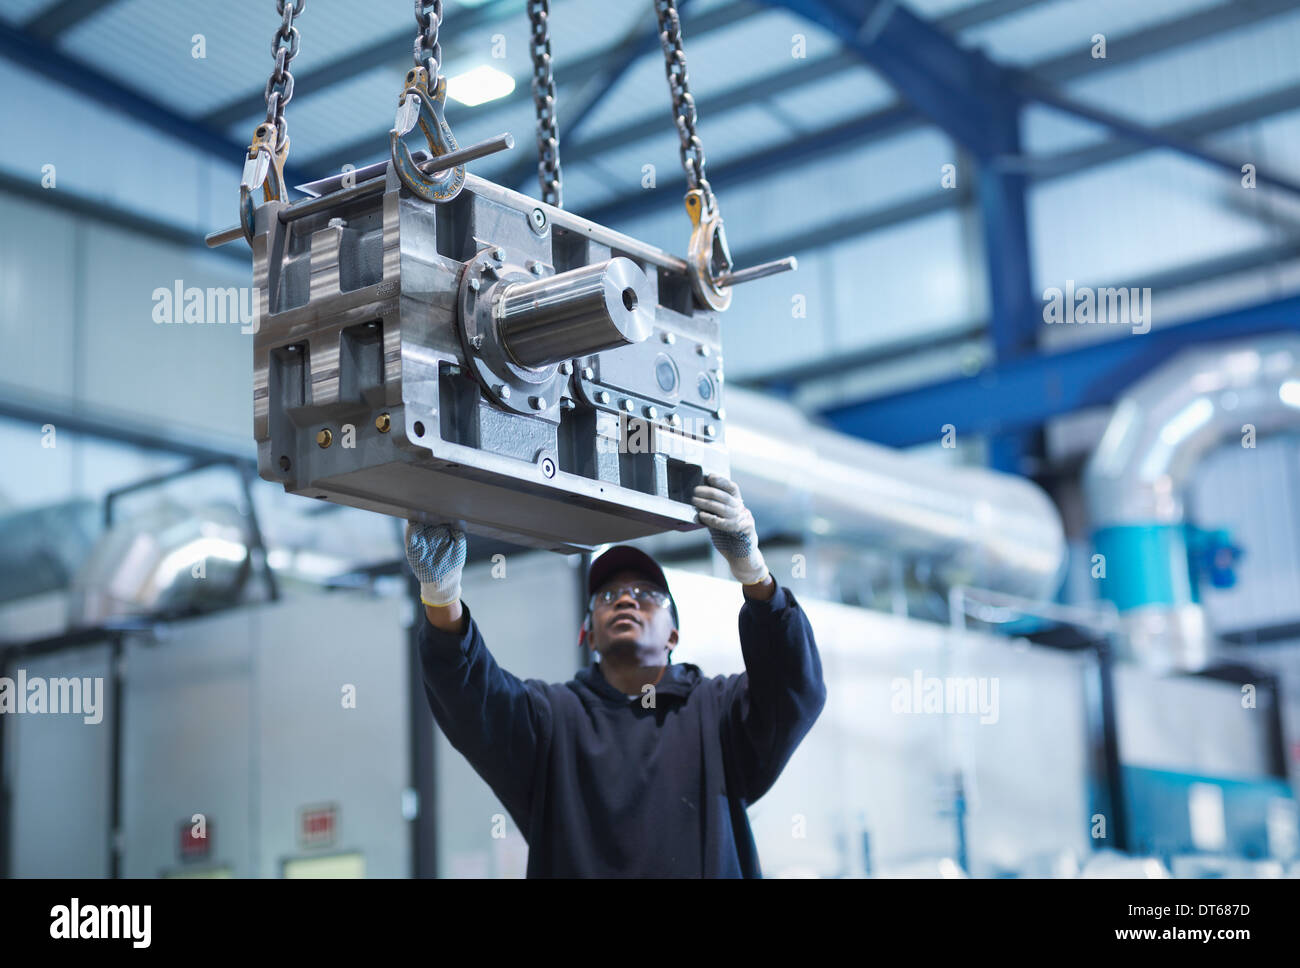 Engineer using crane to move industrial gearbox to paint works in engineering factory - Stock Image